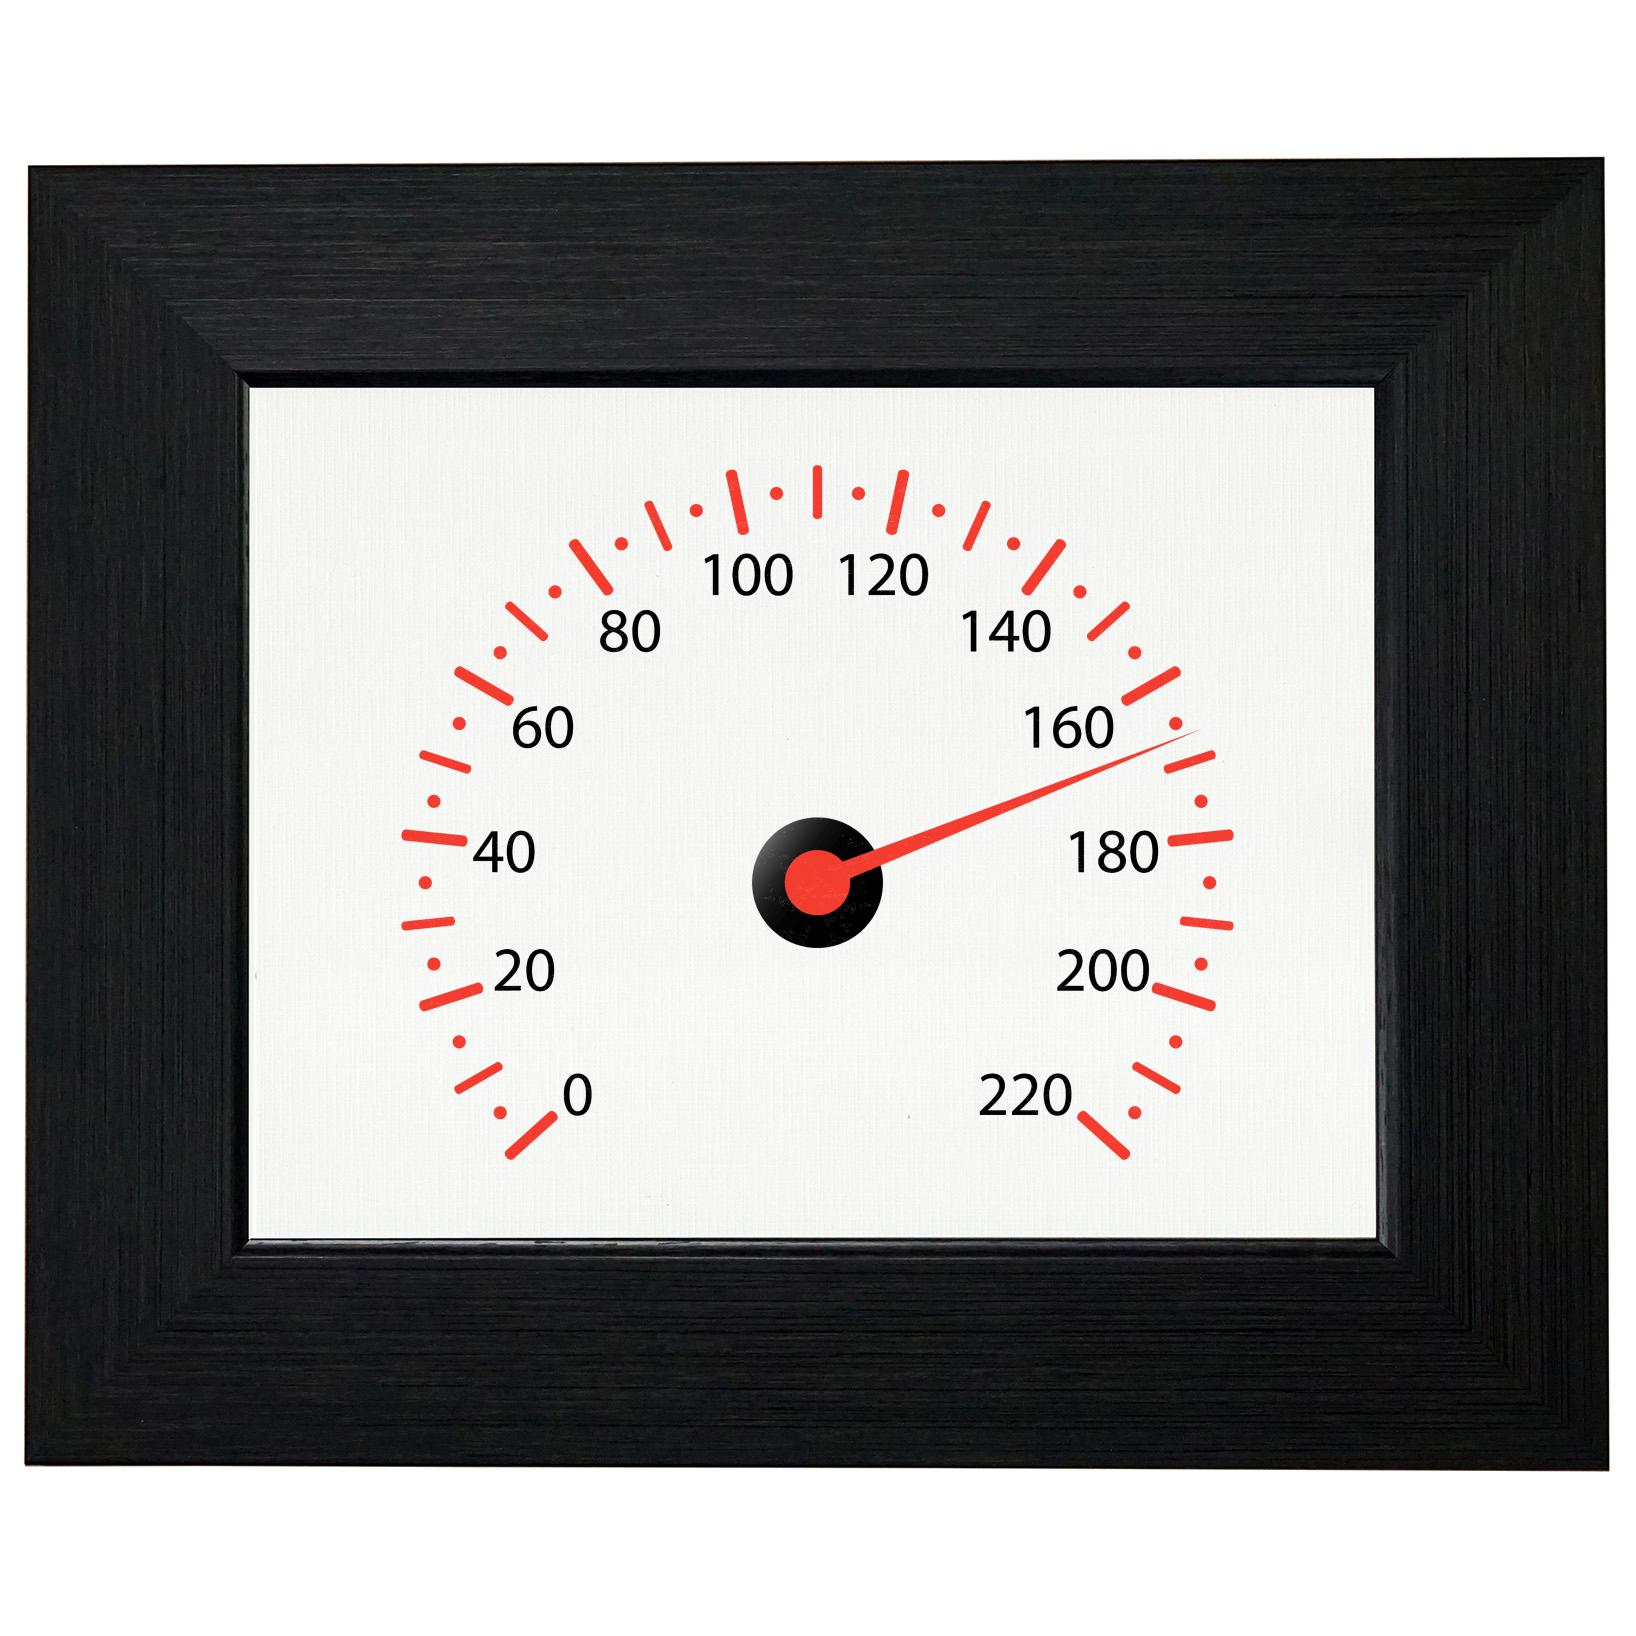 Simple Speedometer Graphic - Race Car Driving Framed Print Poster Wall or Desk Mount Options